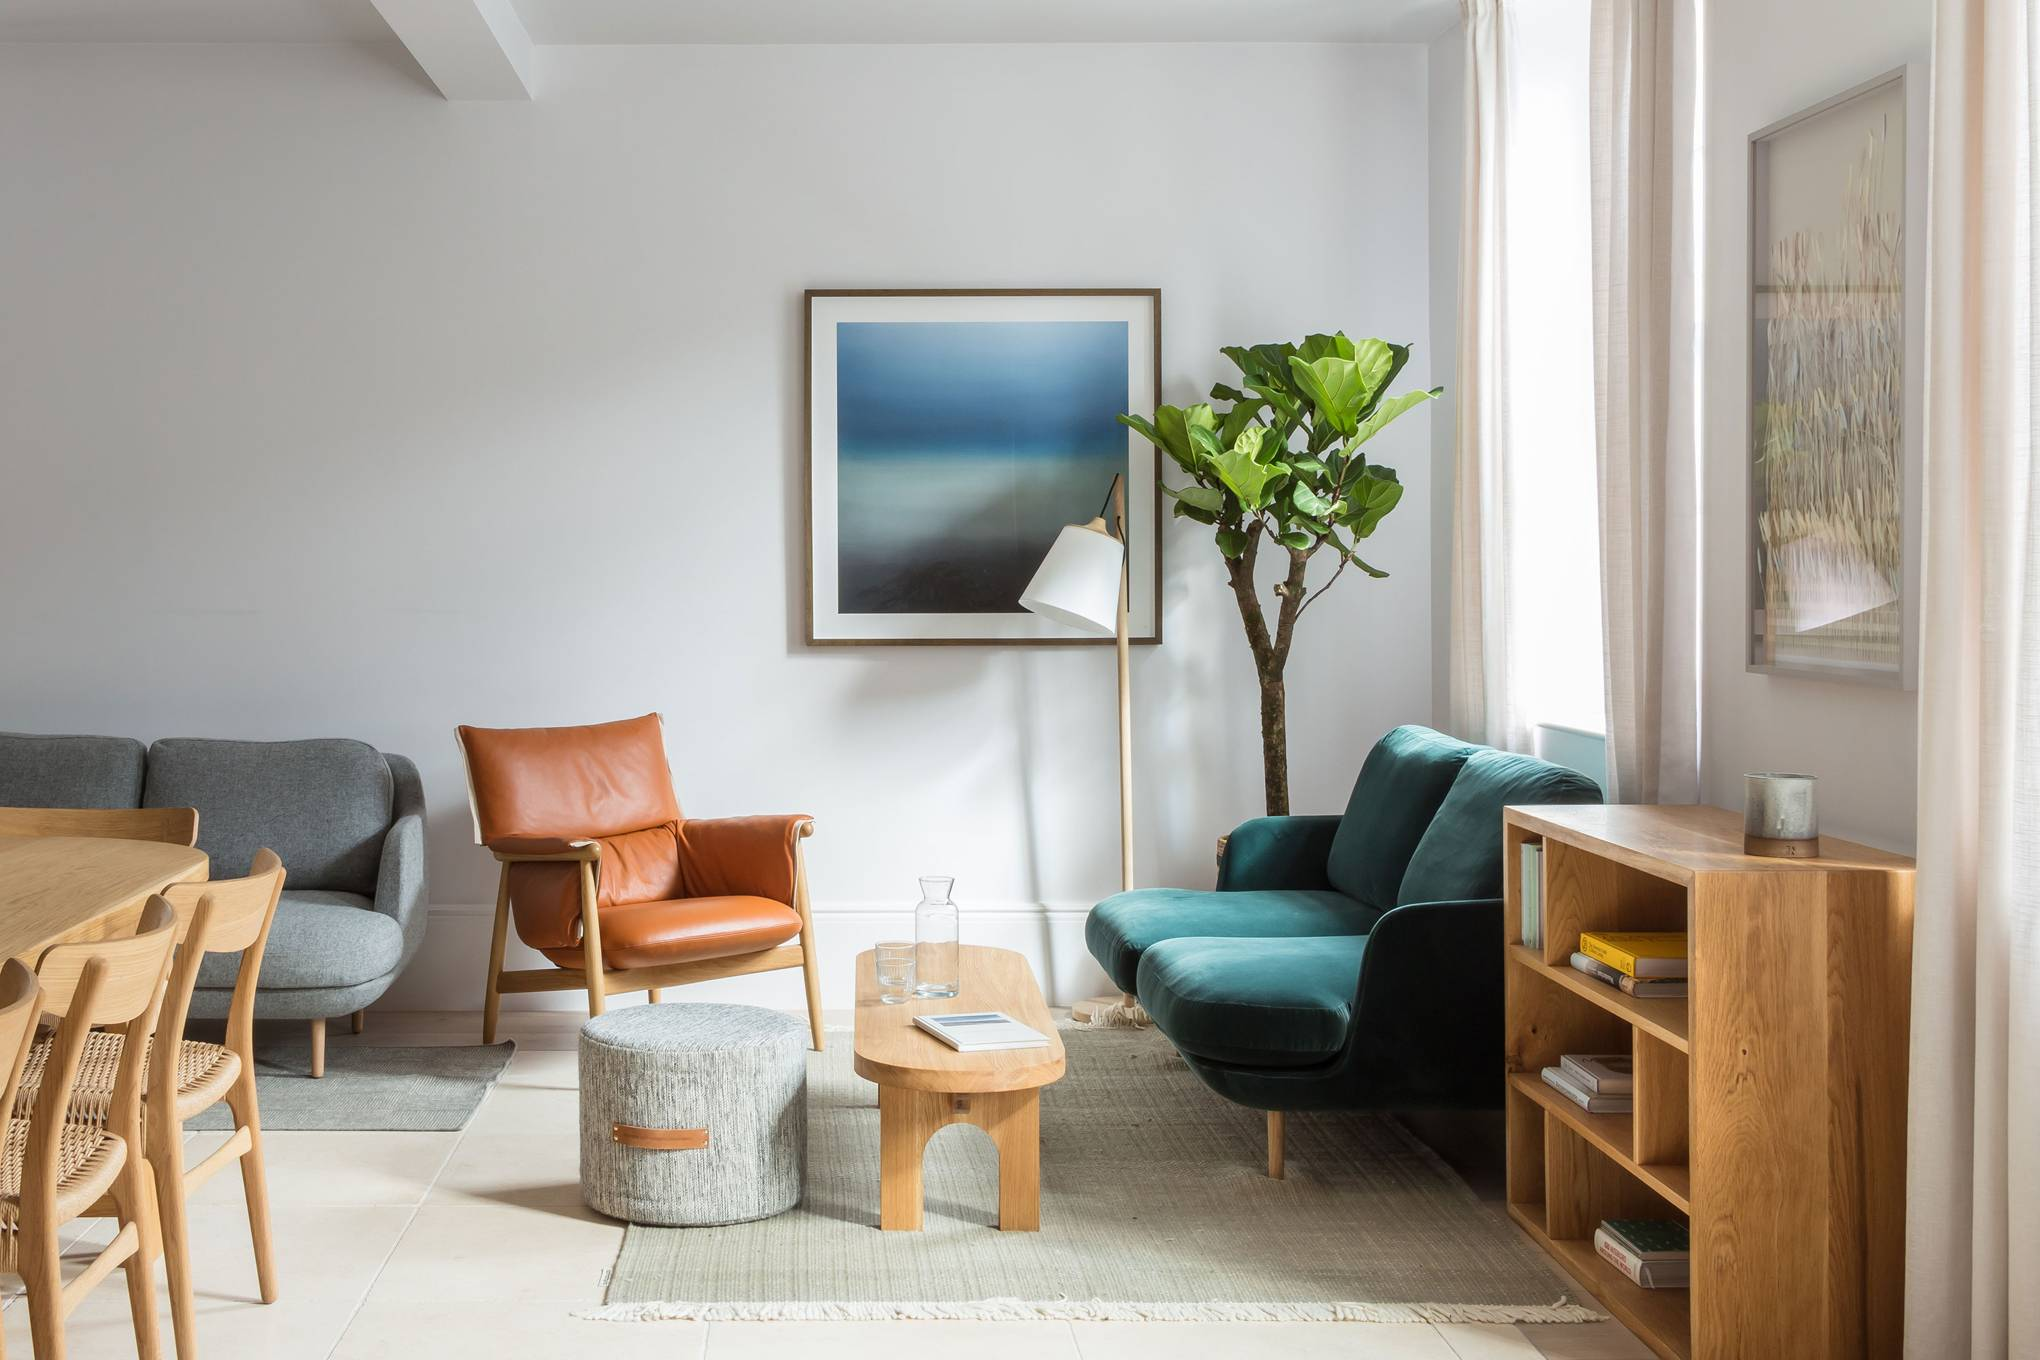 Inhabit Hotel: a wellness bubble in central London